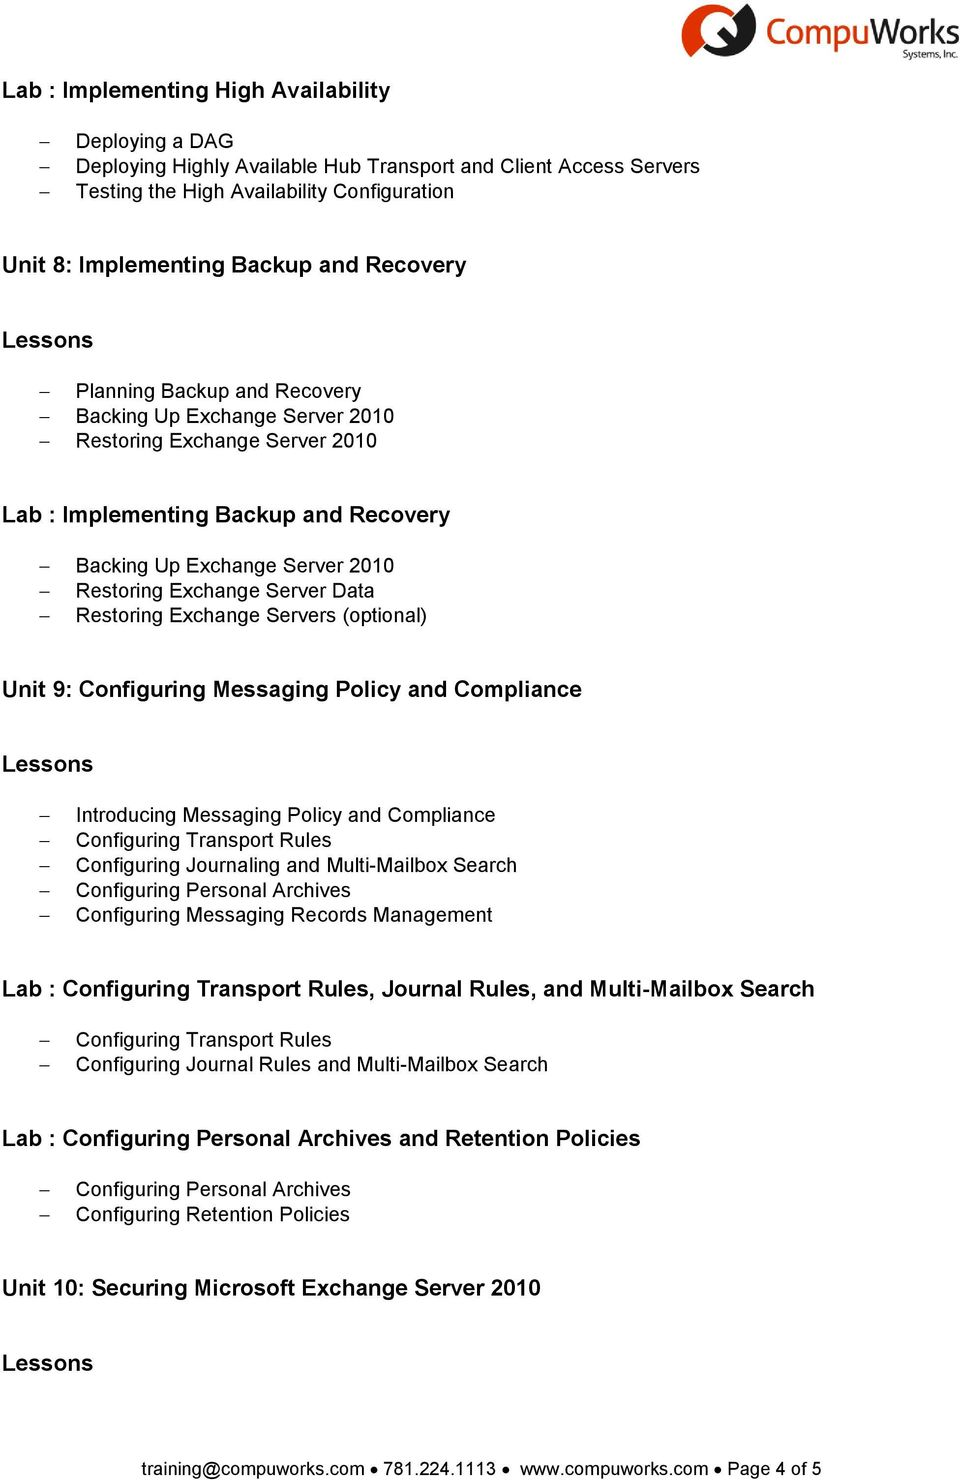 Data Restoring Exchange Servers (optional) Unit 9: Configuring Messaging Policy and Compliance Introducing Messaging Policy and Compliance Configuring Transport Rules Configuring Journaling and